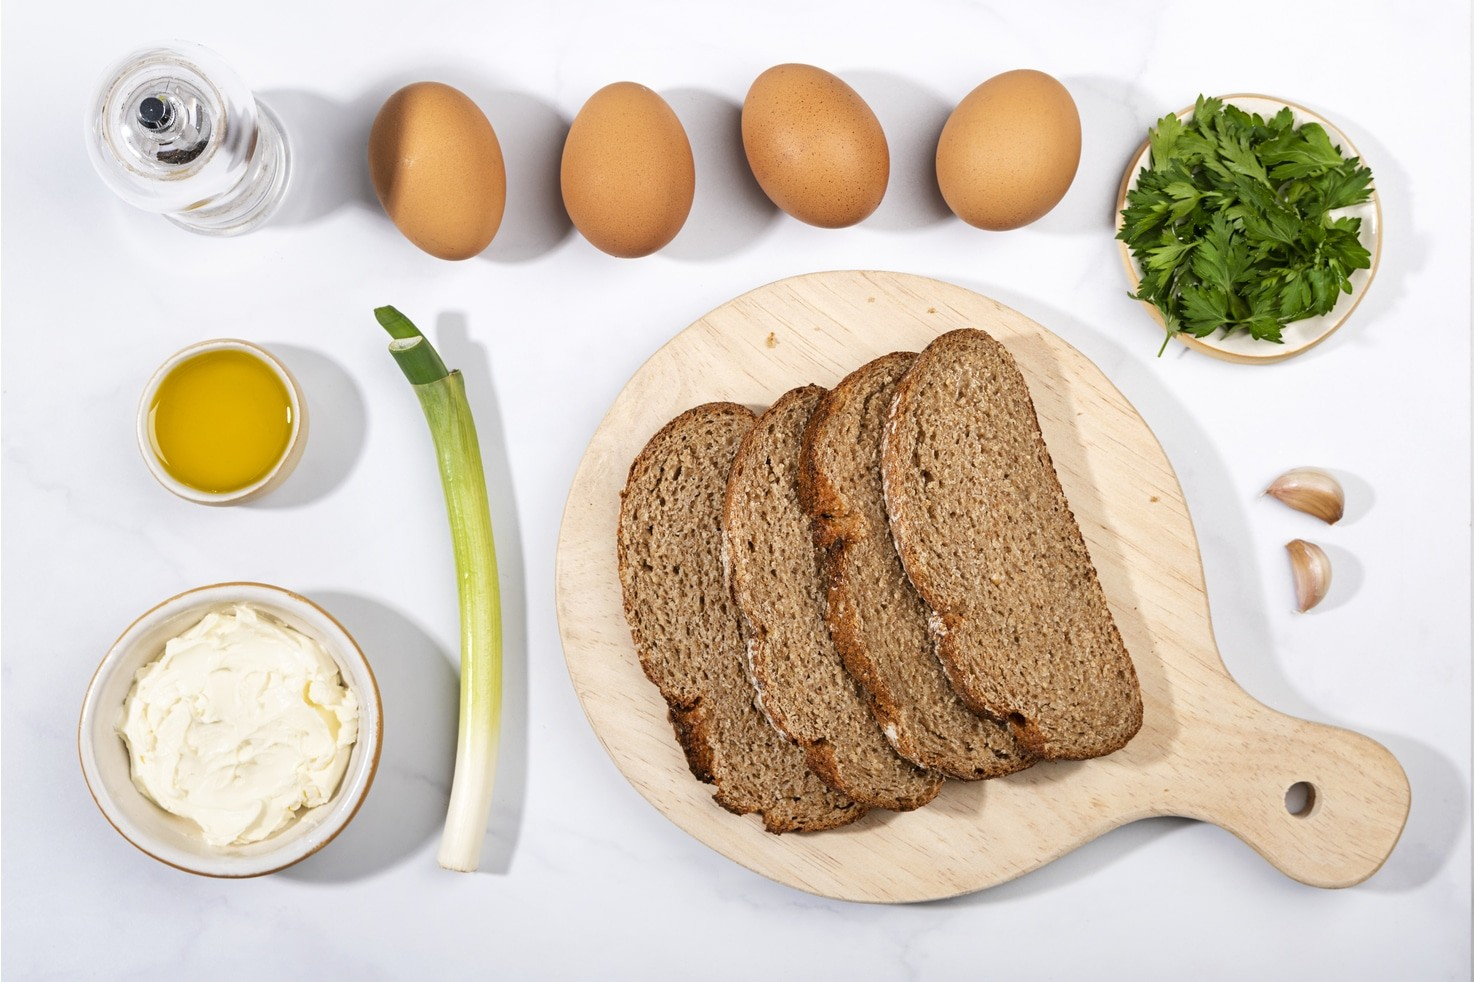 The ingredients for scrambled eggs including 4 slices of brown bread on a wooden board, a spring onion, a bowl of cream cheese, a small bowl of olive oil, a pepper grinder, 4 eggs, a plate of parsley and two garlic cloves | Hurry The Food Up